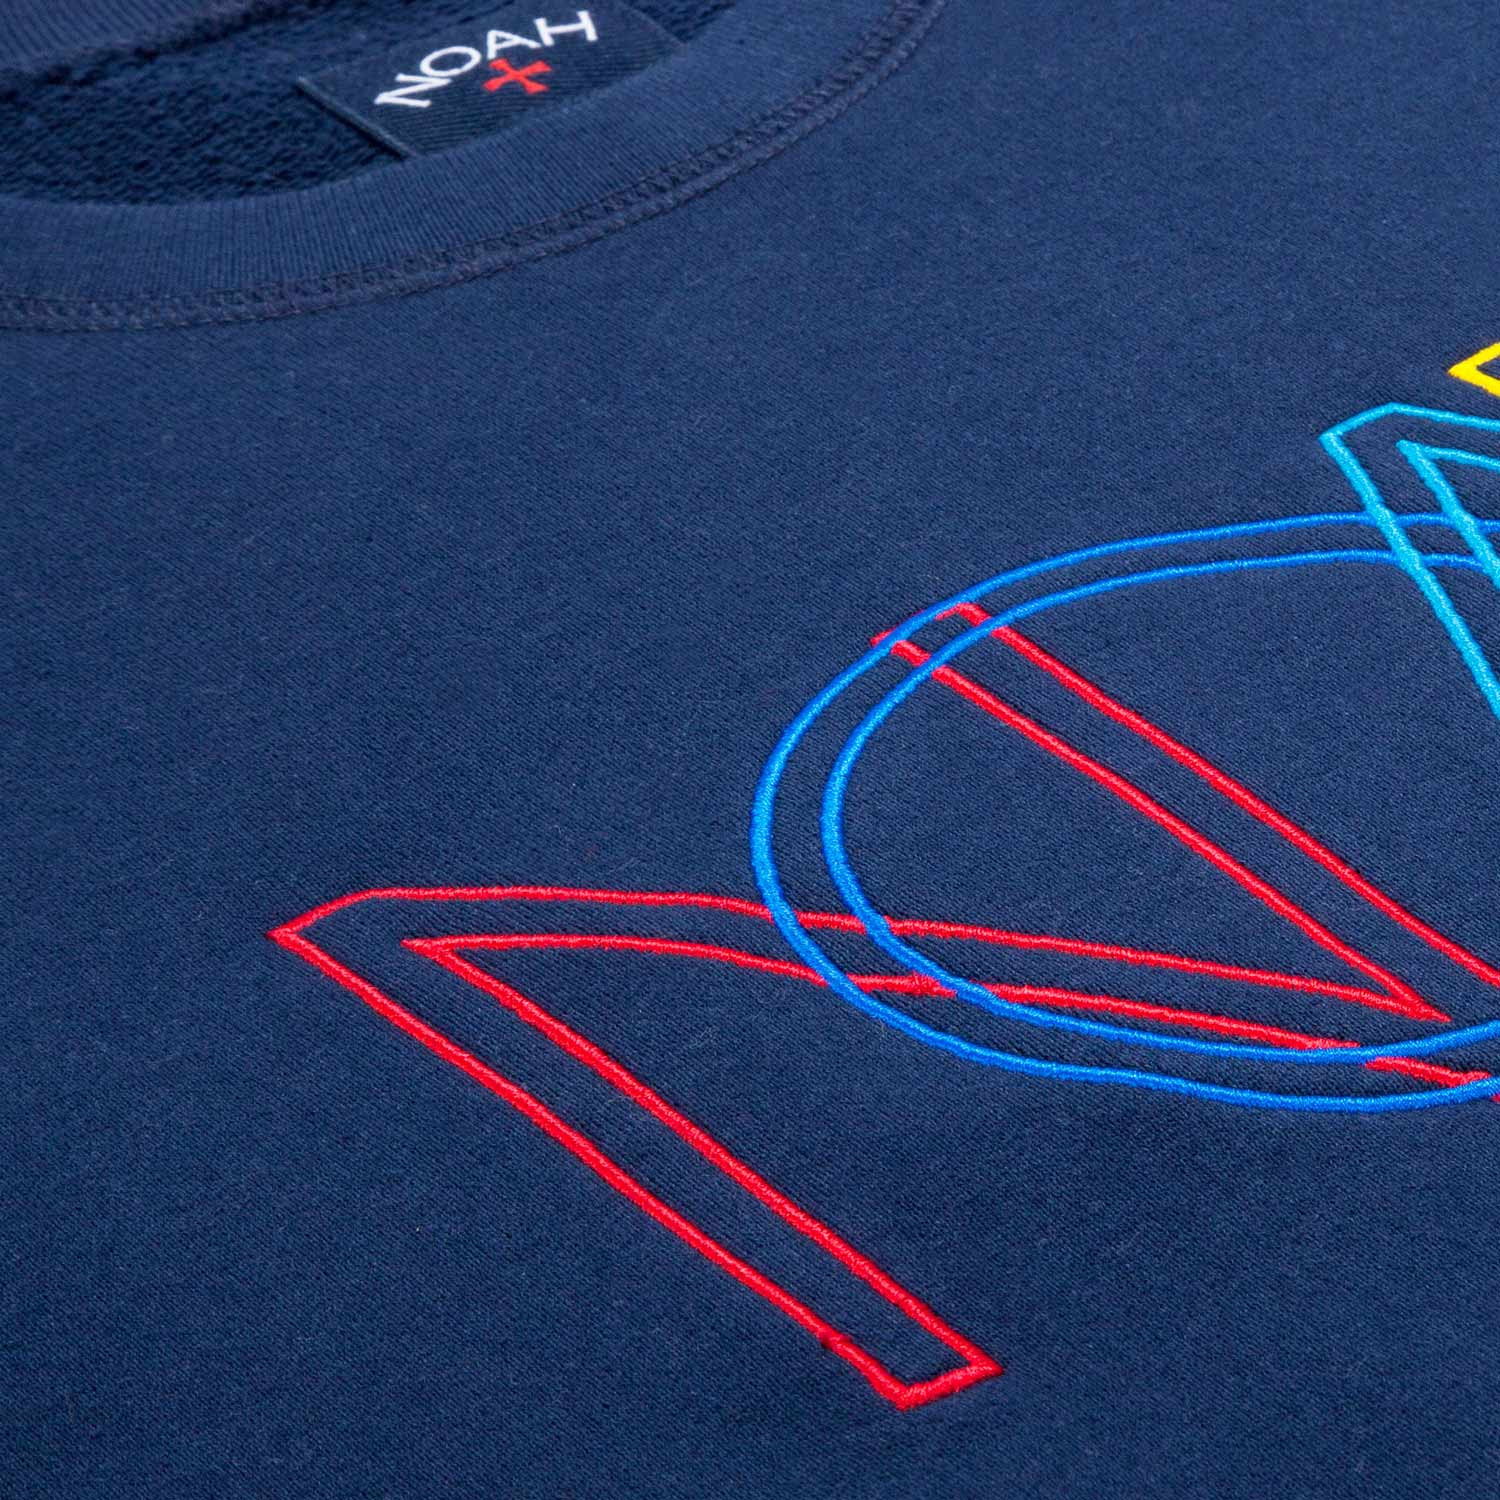 colors_navy_embroidery.jpg